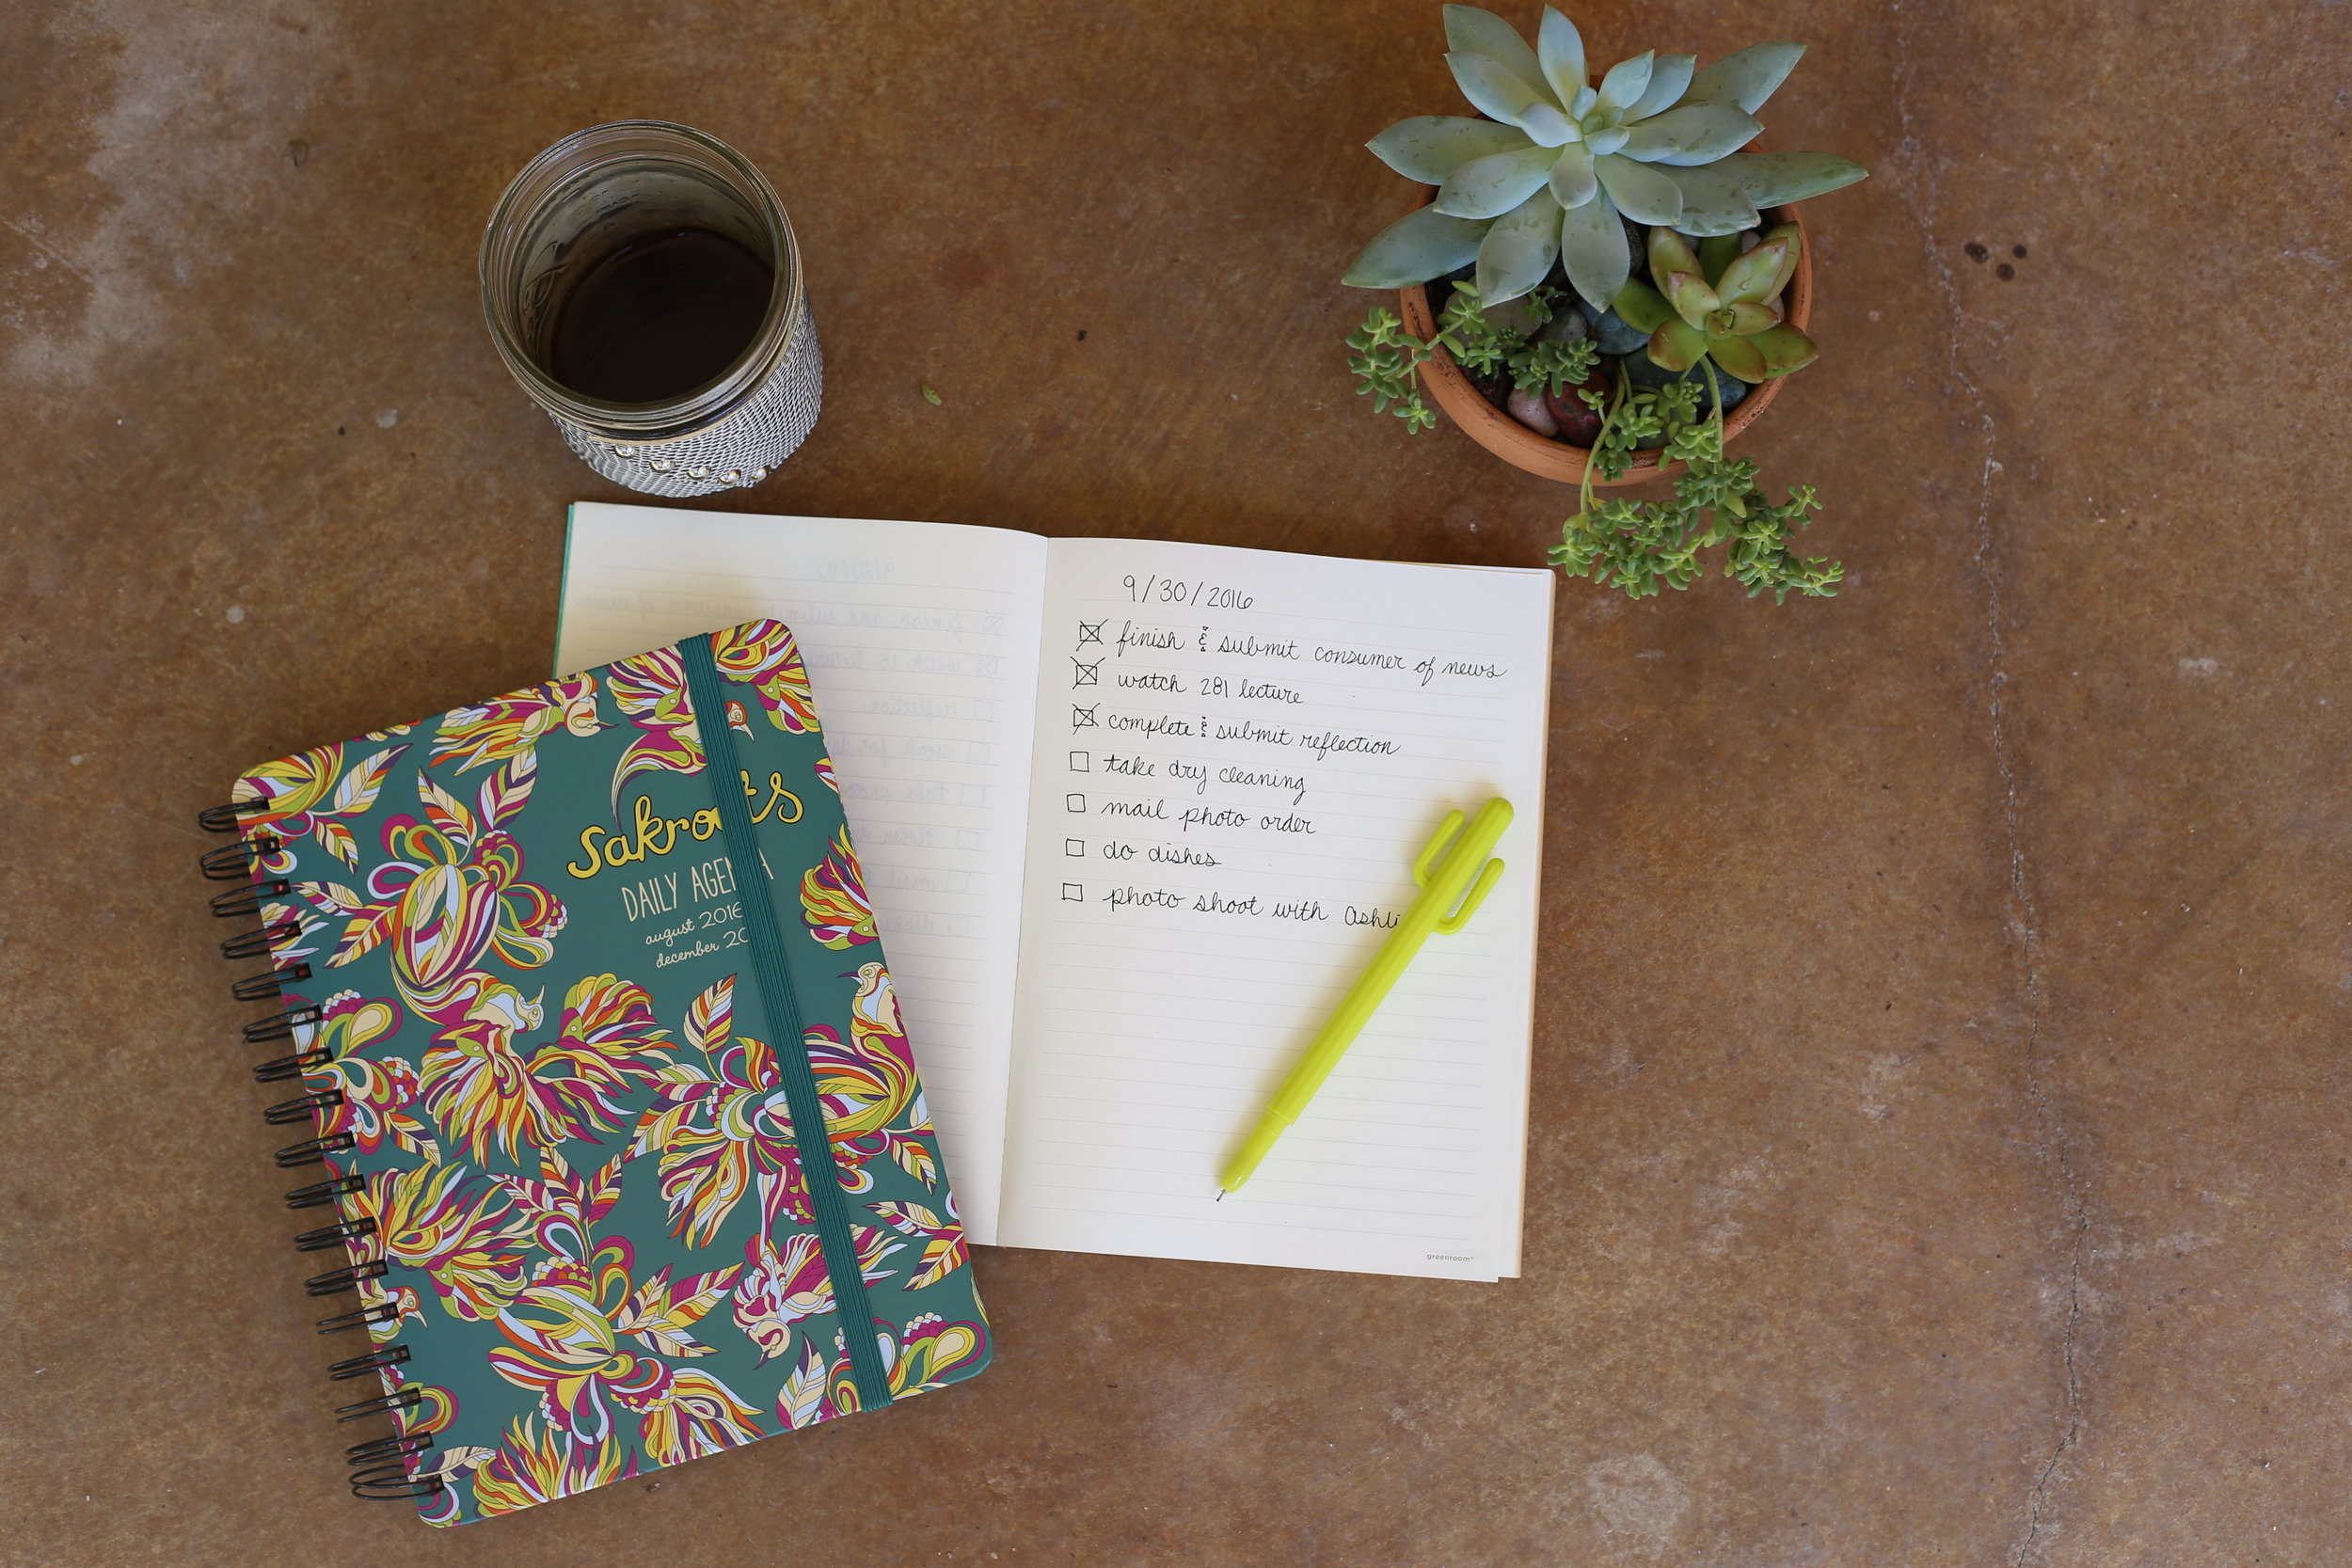 Daily Agenda from Texas A&M Book Store | Recycled Paper Notebook from Target | Cactus Pen from Lolli and Dauts in Round Top, TX | Mason Jar Coffee Mug & Leather Koozie from Bella's in Somerset, PA